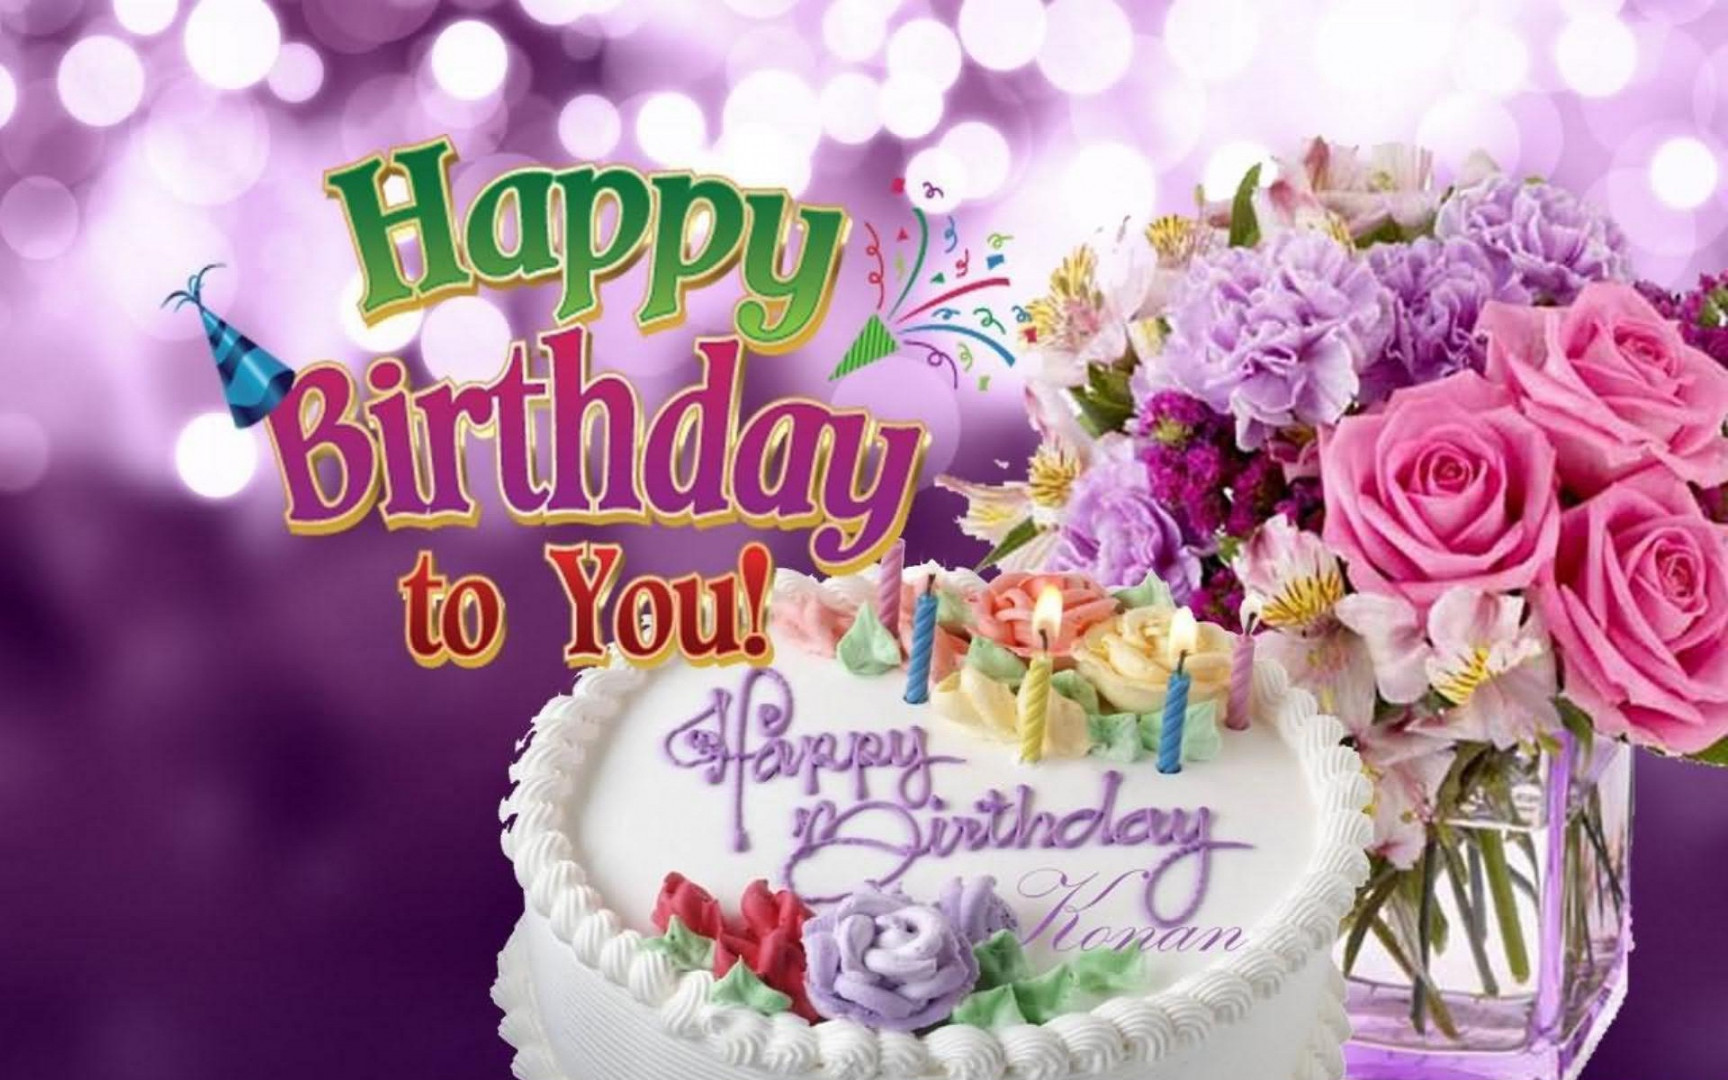 happy birthday wishes images free download ; best-of-happy-birthday-wishes-wallpaper-of-free-happy-birthday-images-for-her